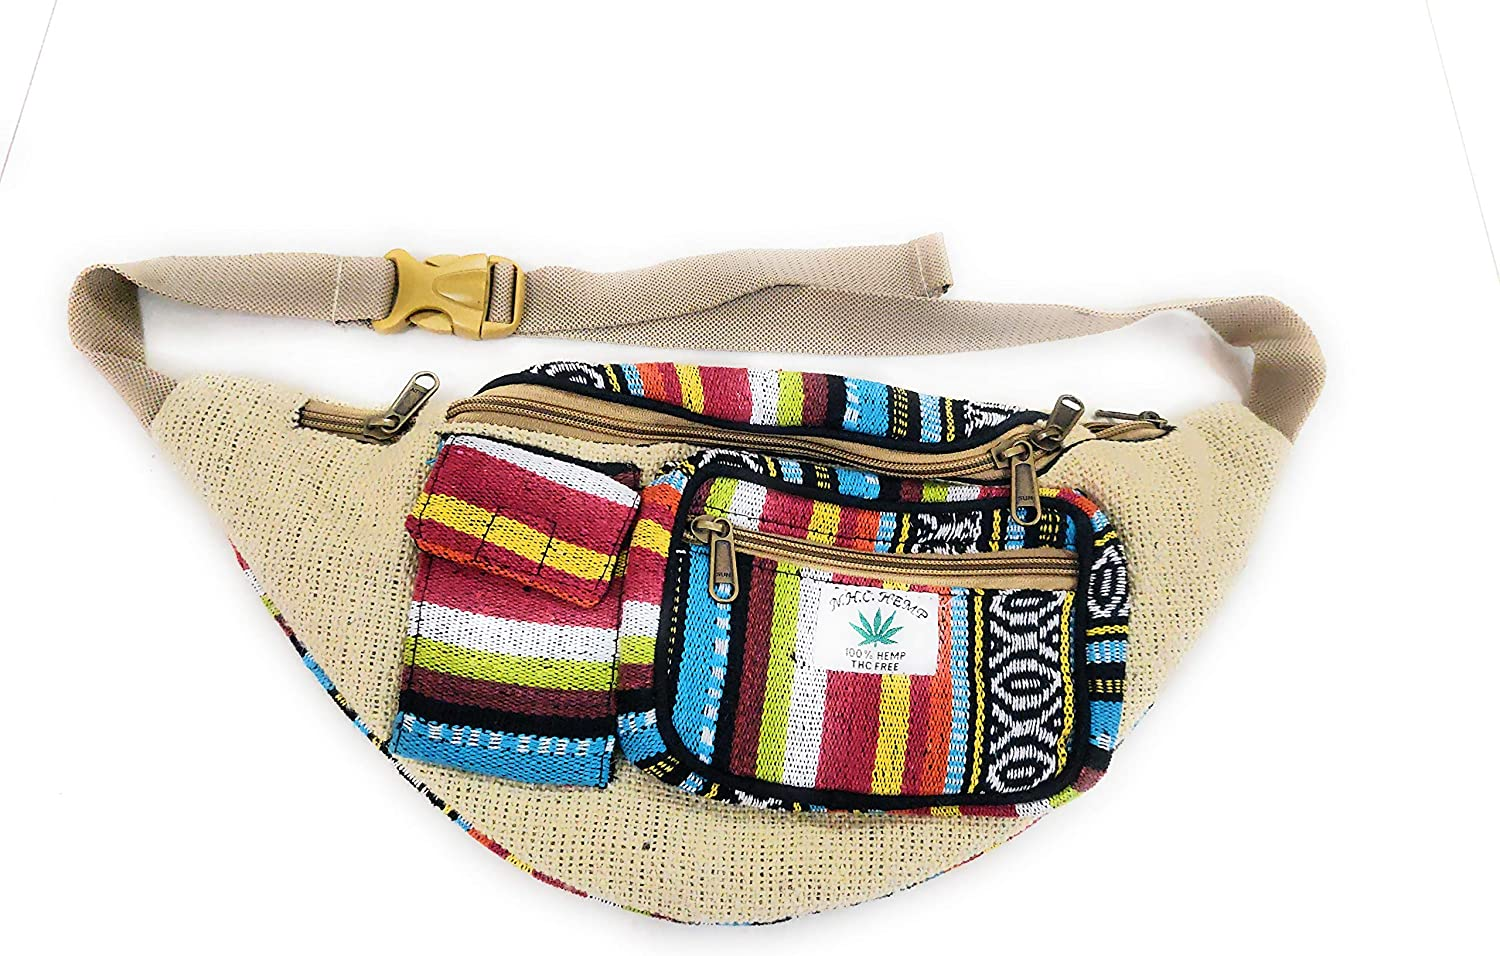 suvasana Handmade Hemp Fanny Pack Waist Hip Bag Handmade from Pure Hemp Boho Bag Hippie Bag Vintage /… beige5